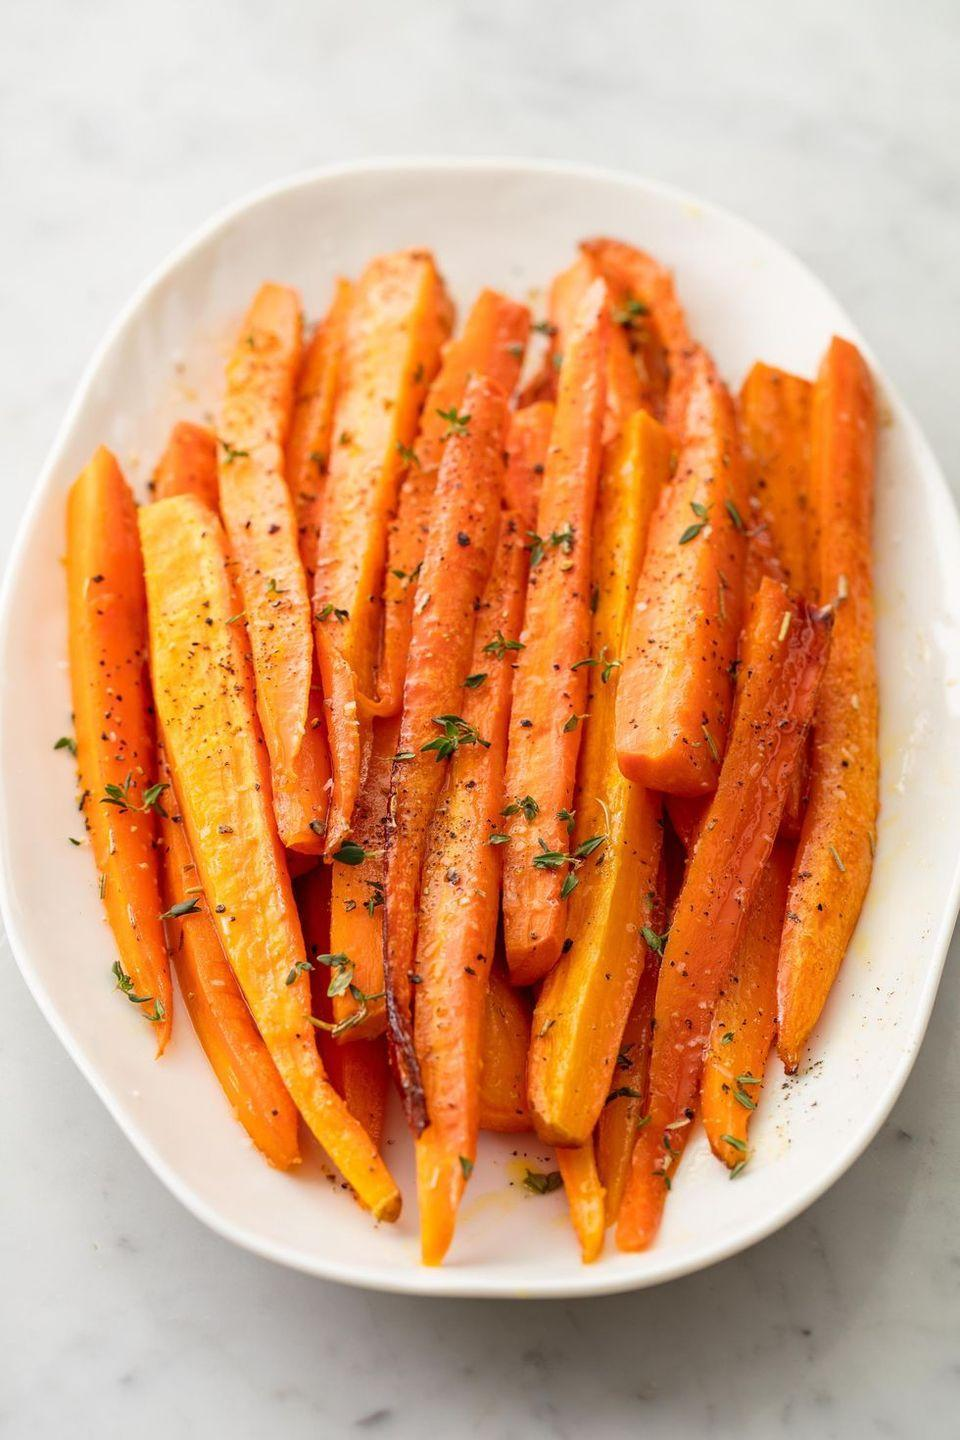 """<p>How do you show picky eaters how delicious vegetables can be? The answer is two-part: First, you make a sweet and sticky glaze; then, you roast. in the oven, the honey butter caramelises and turns plain, boring carrots into the most addictive side dish.</p><p>Get the <a href=""""https://www.delish.com/uk/cooking/recipes/a28934289/honey-glazed-carrots-recipe/"""" rel=""""nofollow noopener"""" target=""""_blank"""" data-ylk=""""slk:Honey-Glazed Carrots"""" class=""""link rapid-noclick-resp"""">Honey-Glazed Carrots</a> recipe.</p>"""